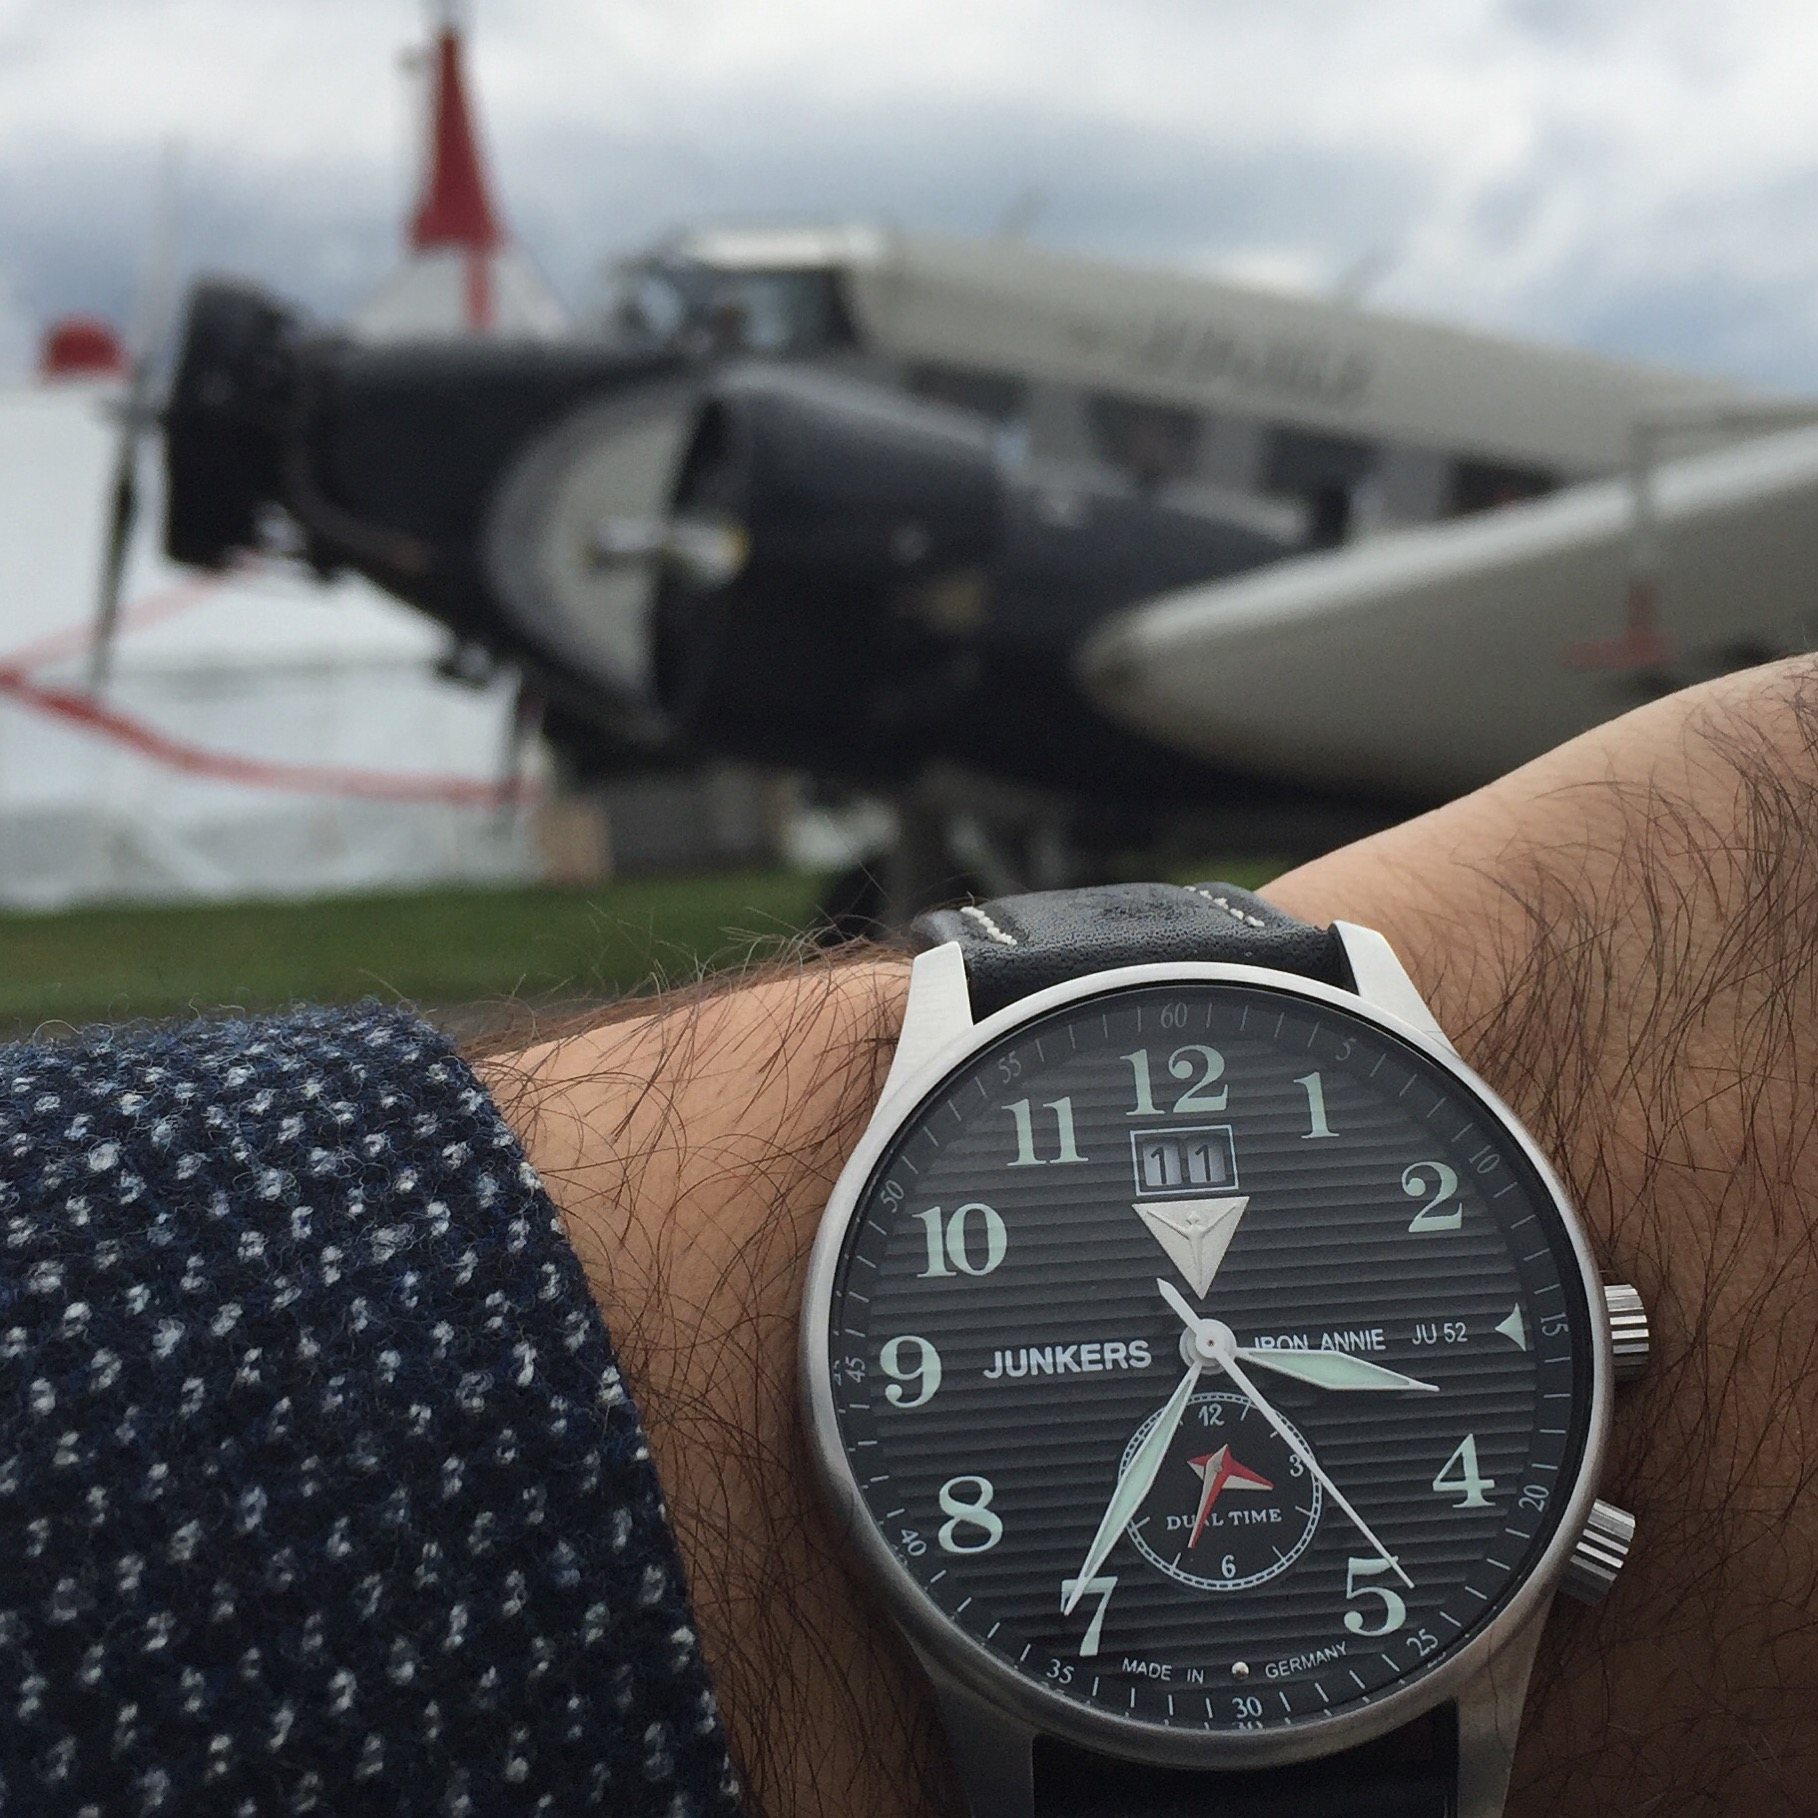 By the way, Junkers has also its own range of watches, decorated (on the reverse) with the siluette of the Ju-52. I got mine as a gift, coincidentally, just a few months before I knew I was going to experience the Ju-52 for real!